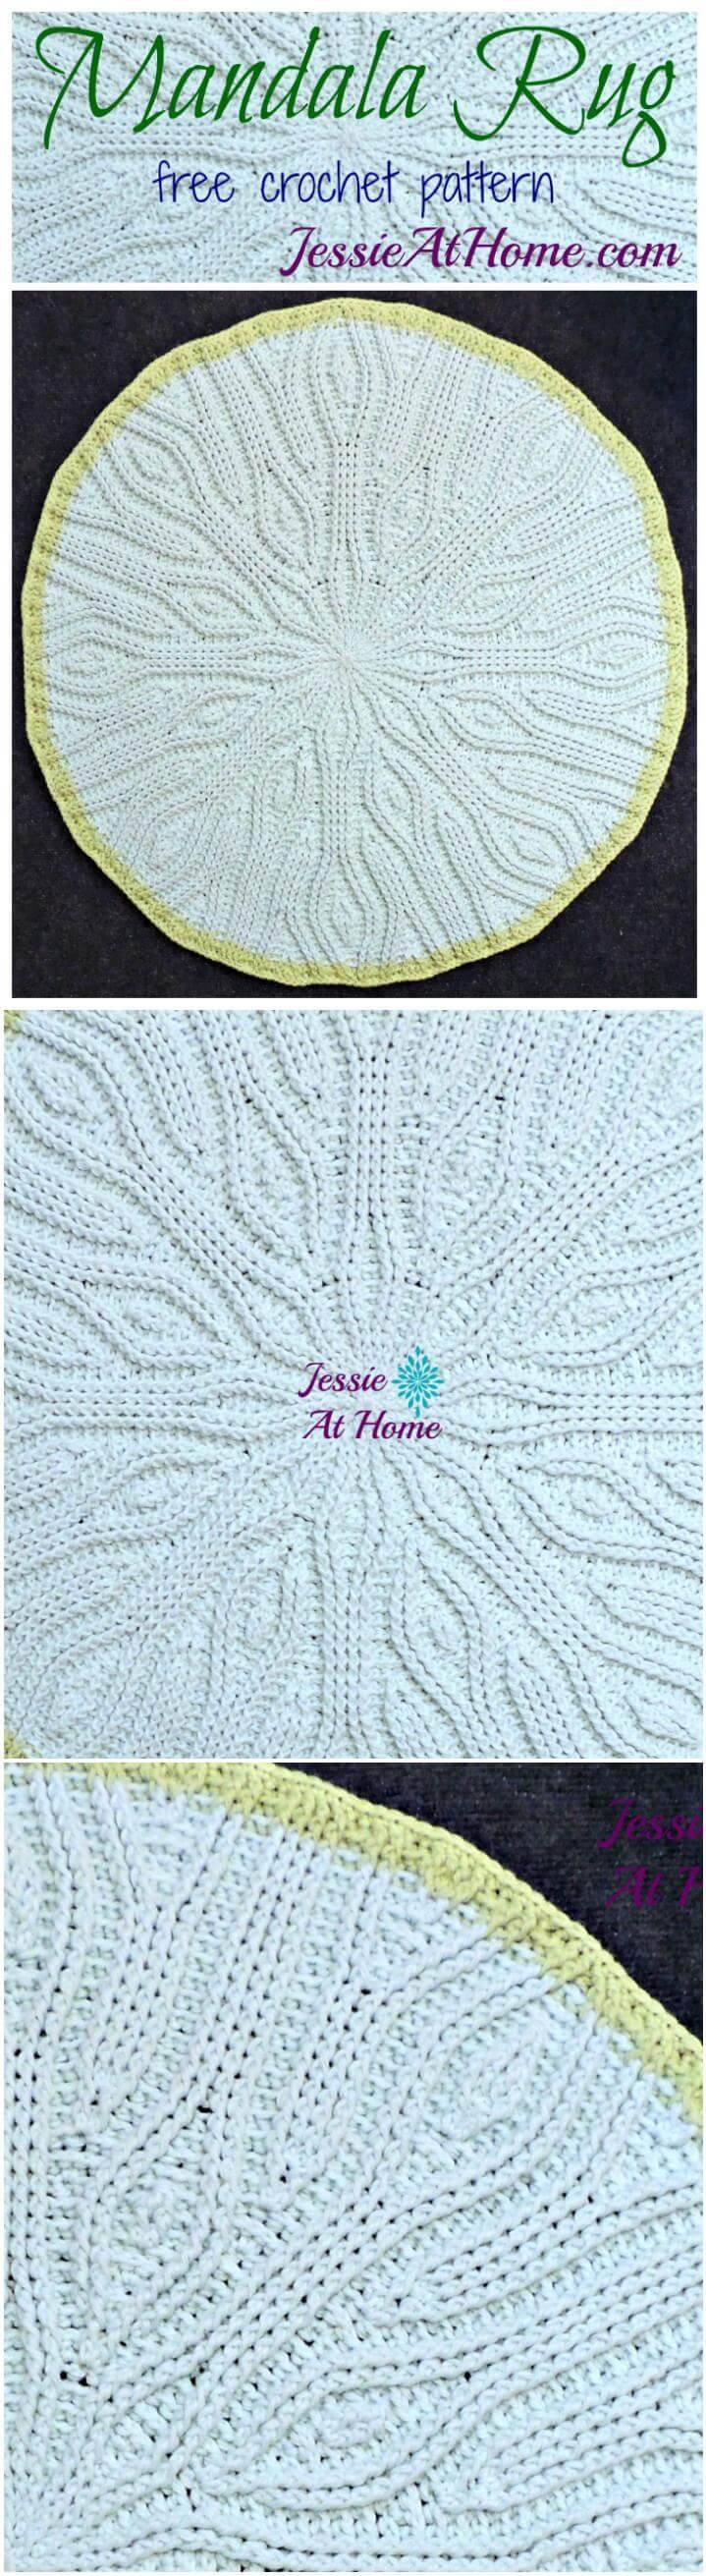 60 Free Crochet Mandala Patterns Diy Crafts Diagram Beautiful Rug Easy